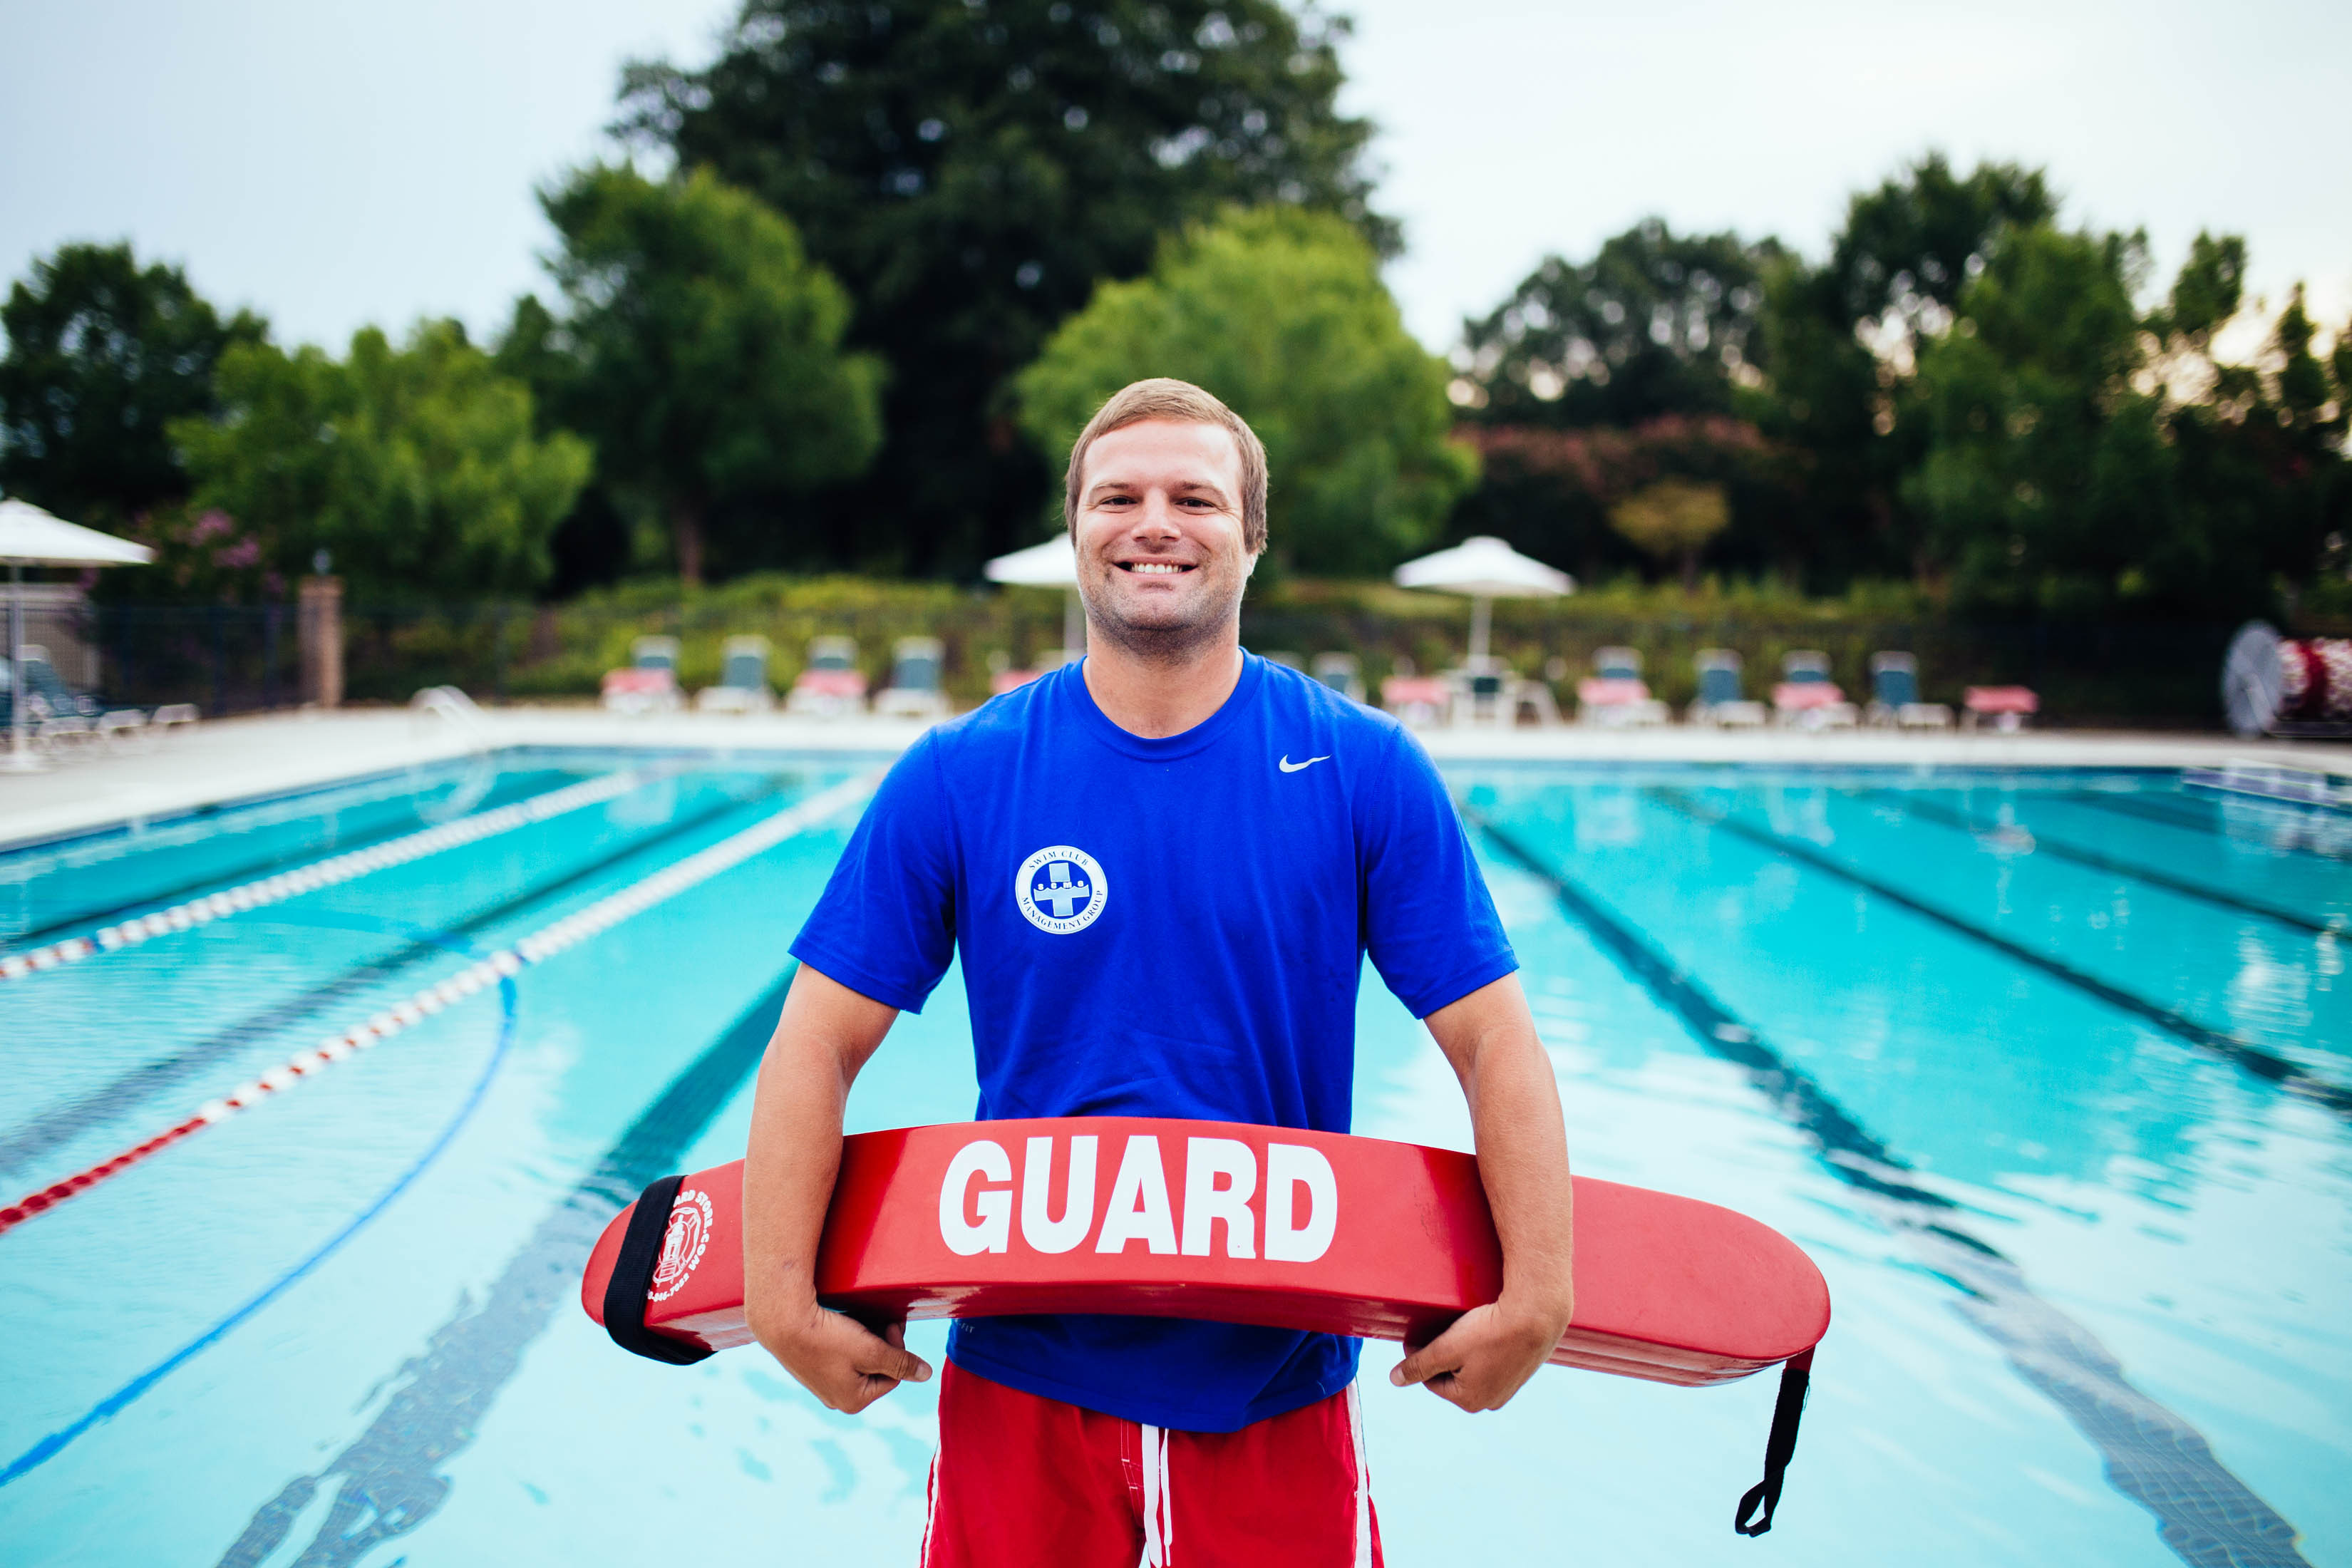 1badb2ffafc4 Frequently Asked Questions - Lifeguard Asheville